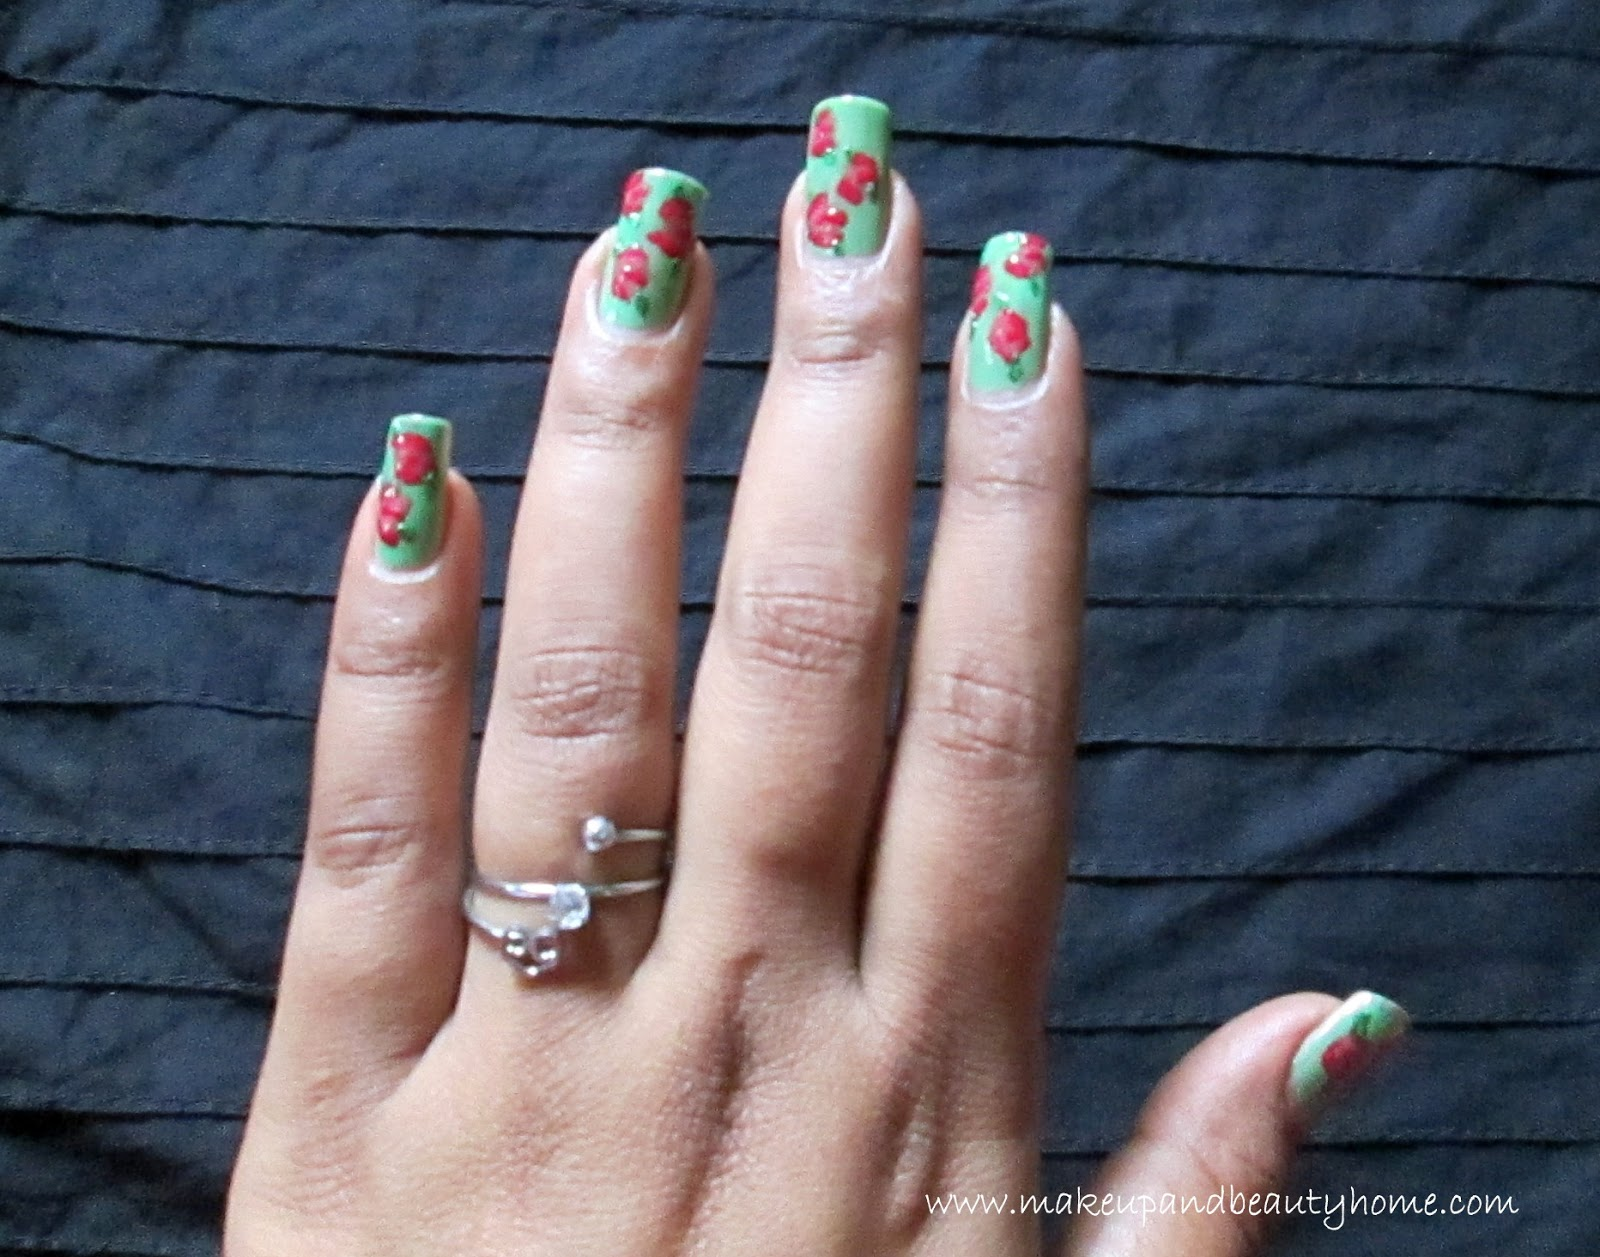 Vintage rose print nail art tutorial do it yourself - Nail designs do it yourself at home ...